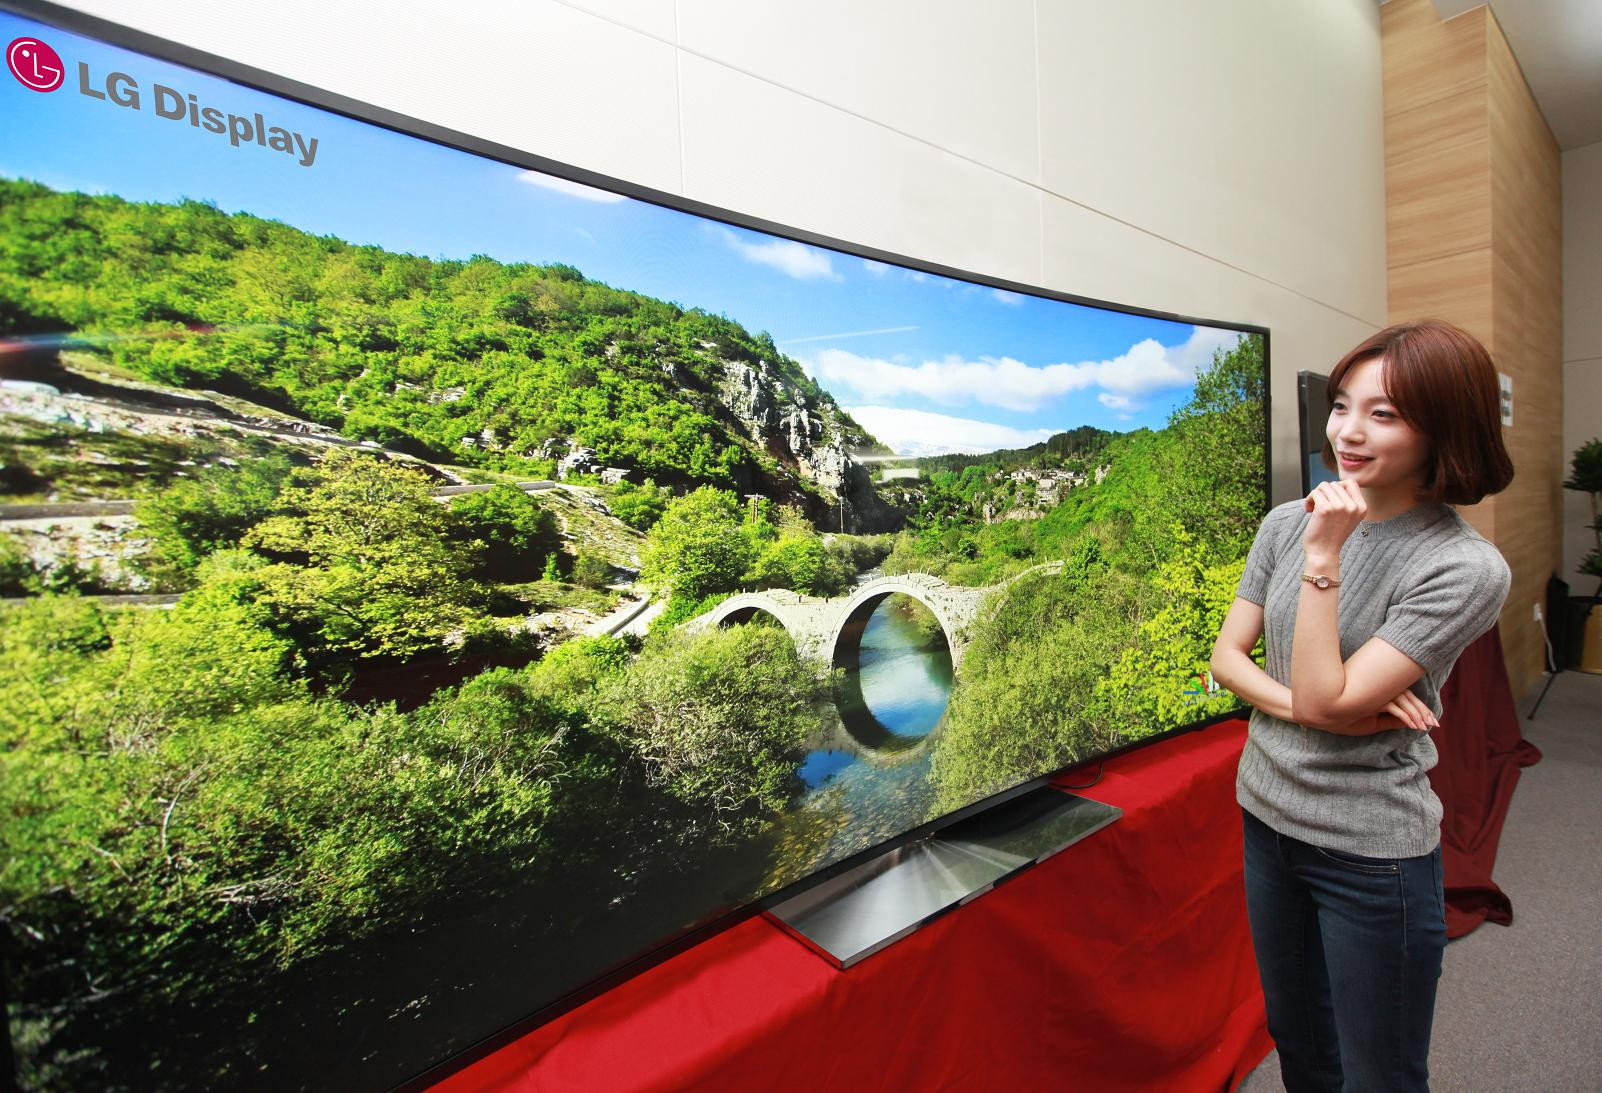 1387717403_lg-to-unveil-worlds-first-105-inch-curved-ultra-hd-tv-at-ces-20142.jpg